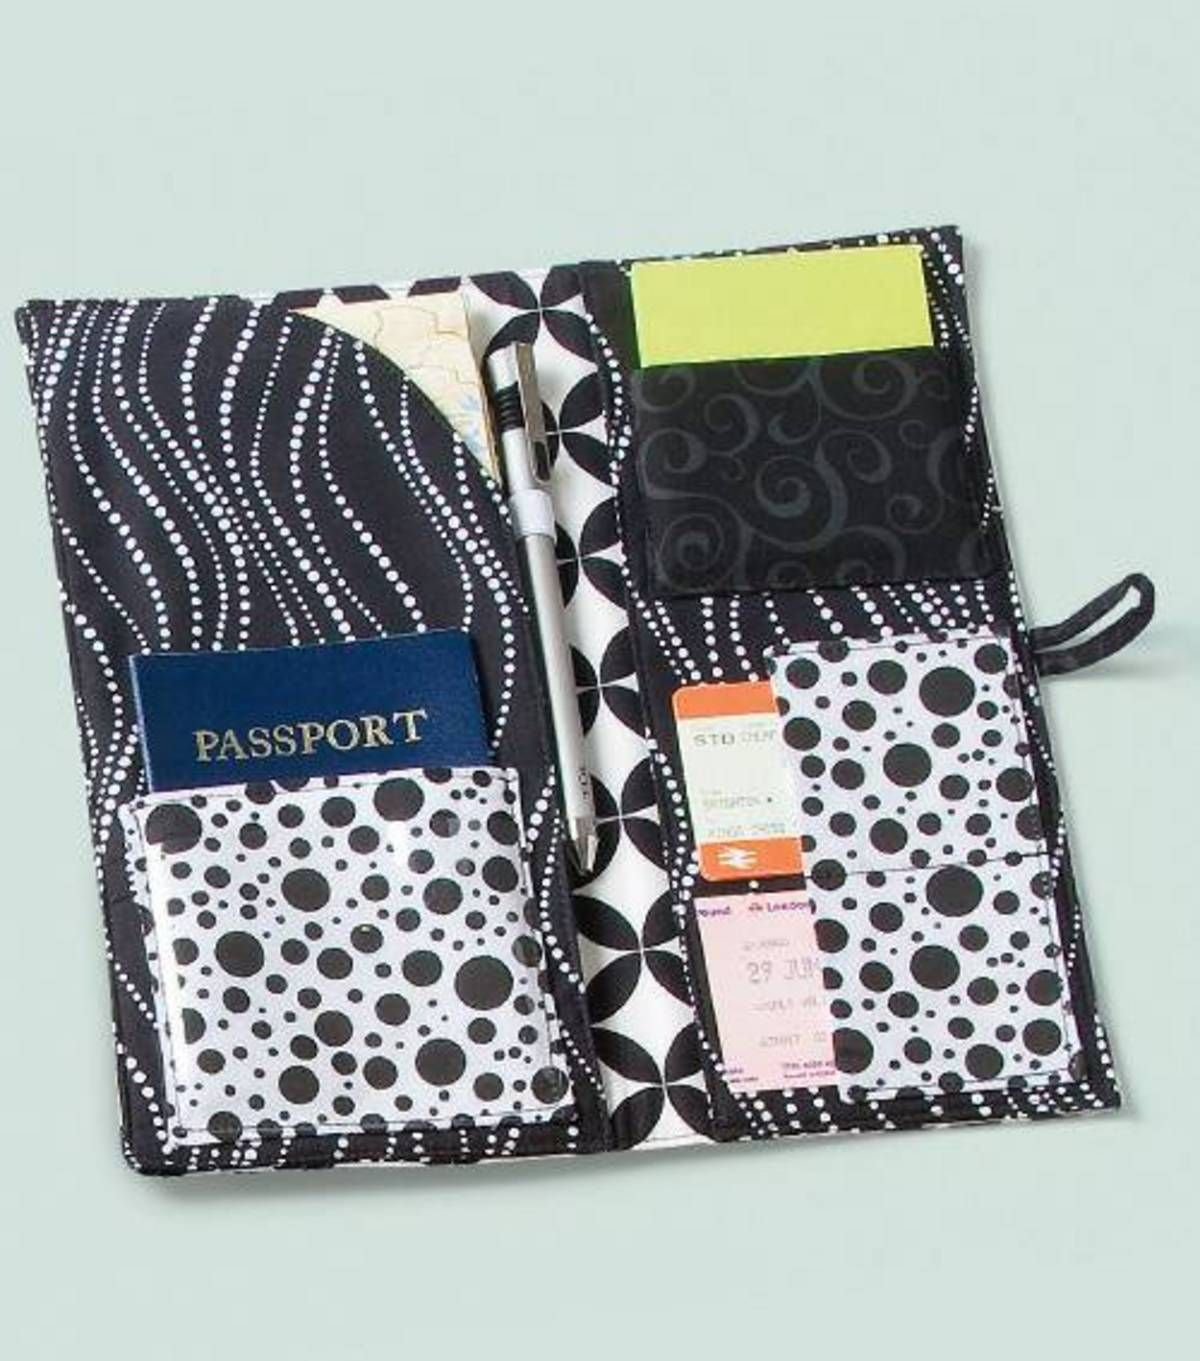 Passport Case - downloadable pattern from Joann.com | Sewing ...